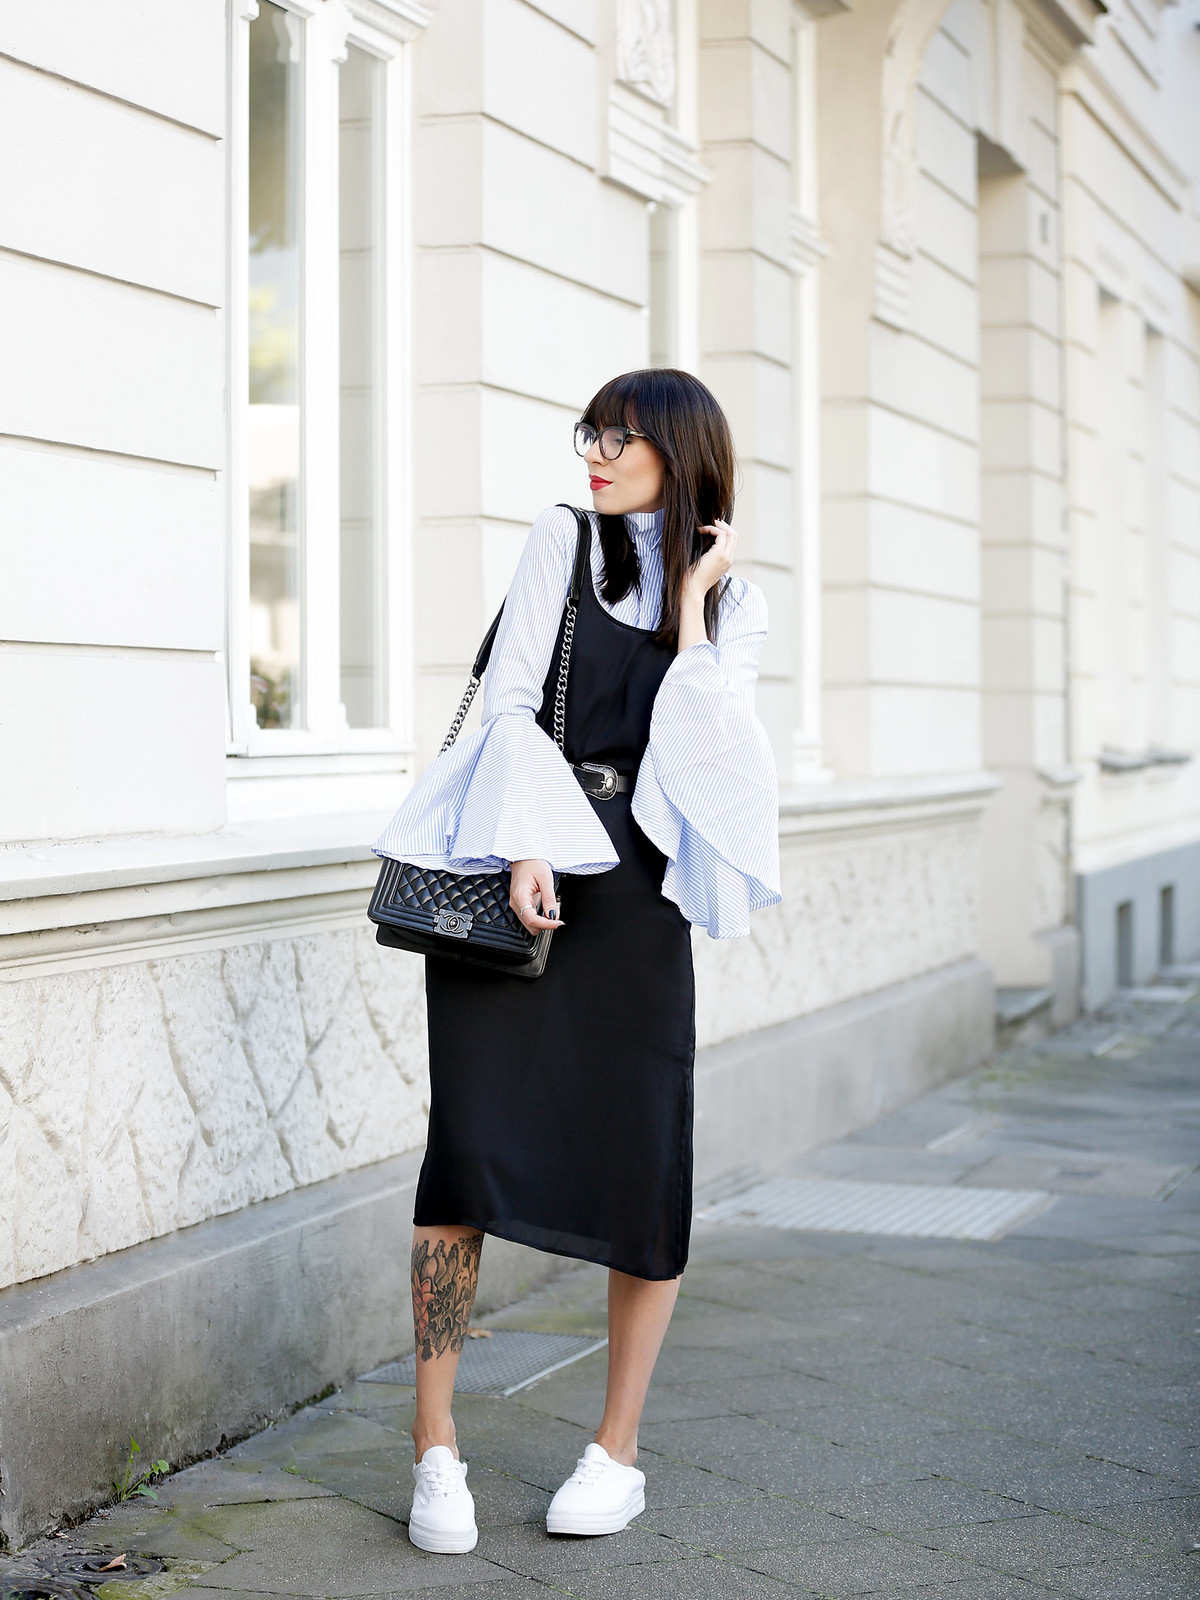 outfit slip dress wide sleeves stripes blogger for mister spex glasses brille brillenkollektion online shop design bangs brunette chanel boy sacha sneakers cats & dogs blog ricarda schernus modeblogger 5